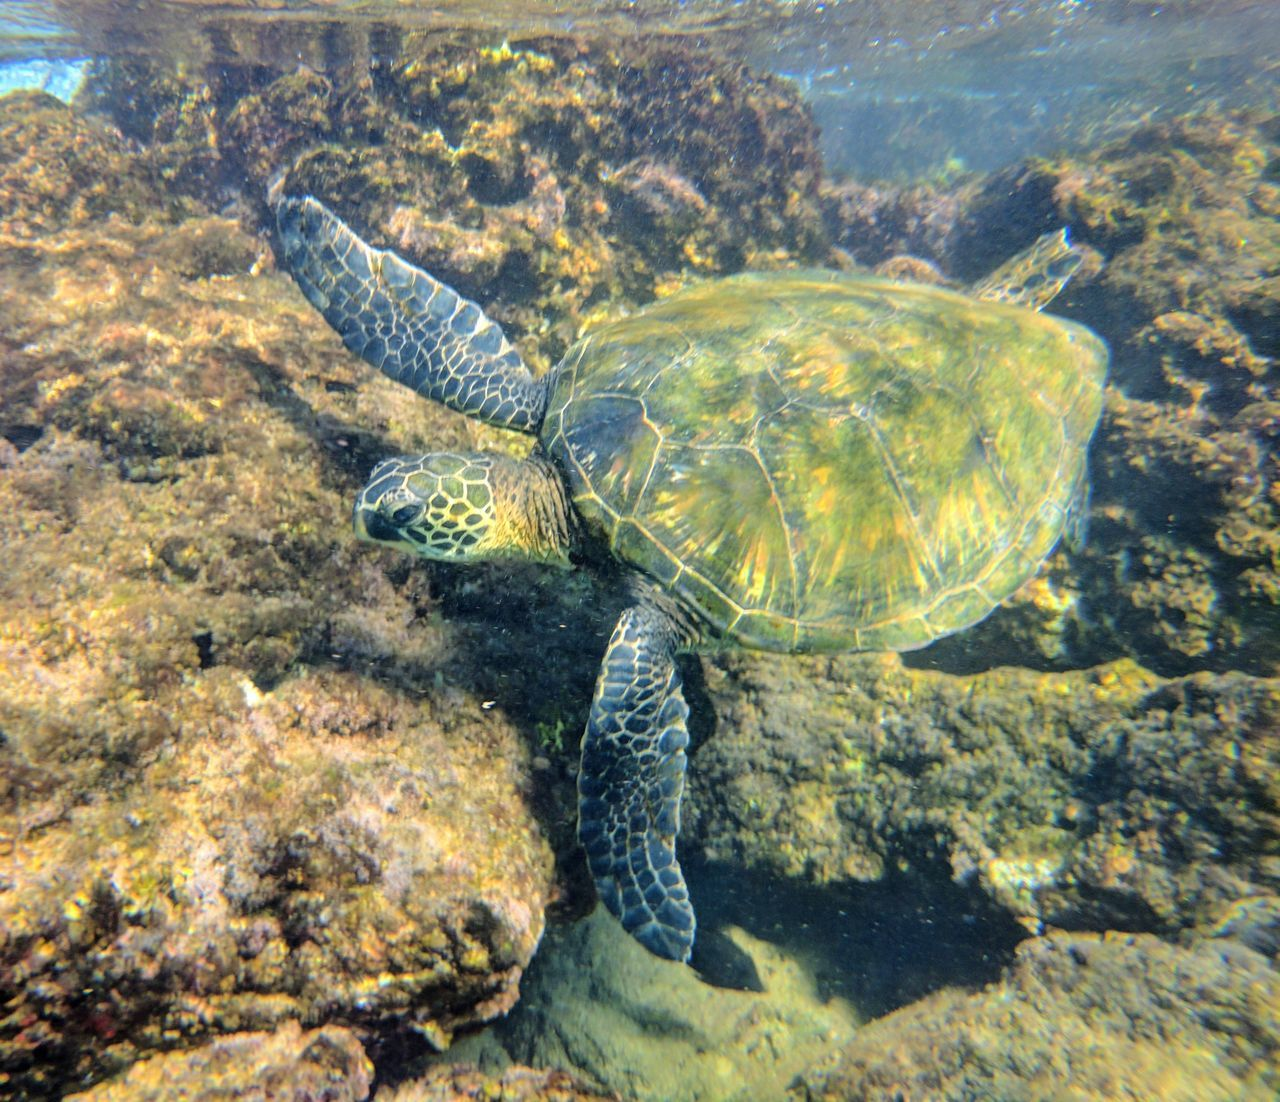 Say thie turtle while snorkeling in Maui, Hawaii. High Angle View Animal Themes Animals In The Wild No People Underwater Nature Sea Life Outdoors Beauty In Nature Day Sea Turtle Reptile Close-up UnderSea